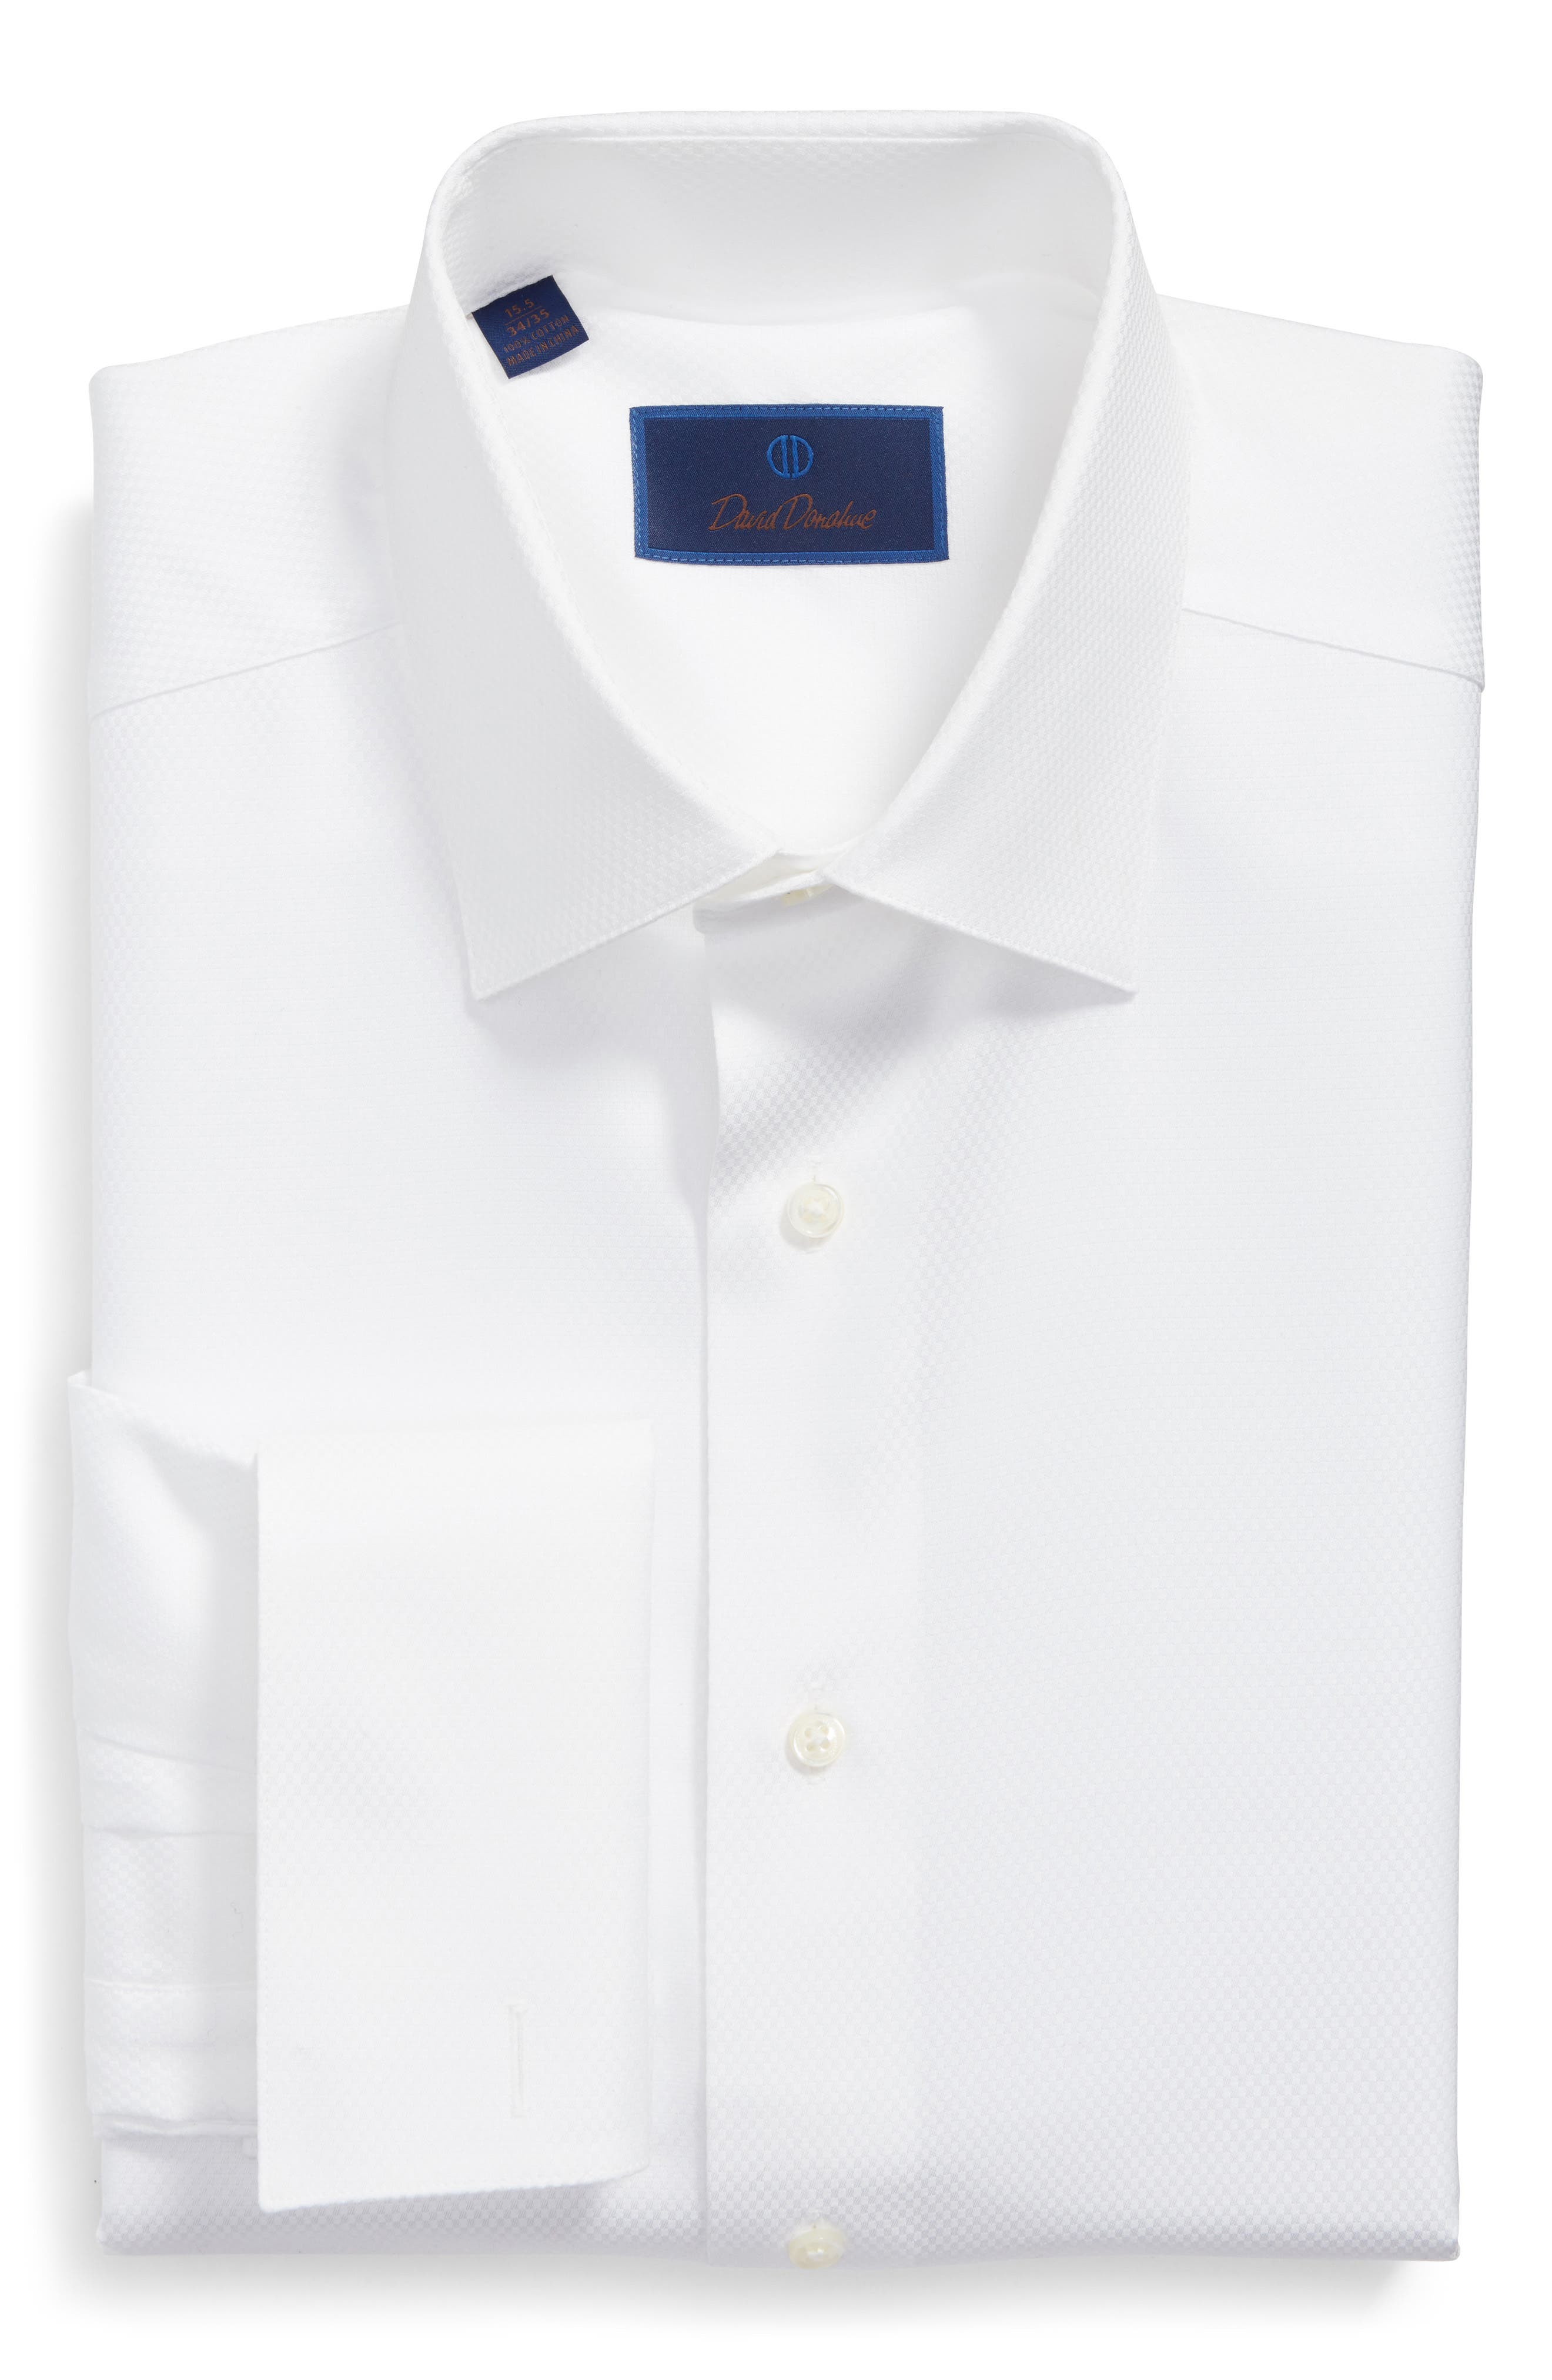 Regular Fit Solid French Cuff Tuxedo Shirt,                             Alternate thumbnail 6, color,                             White / White